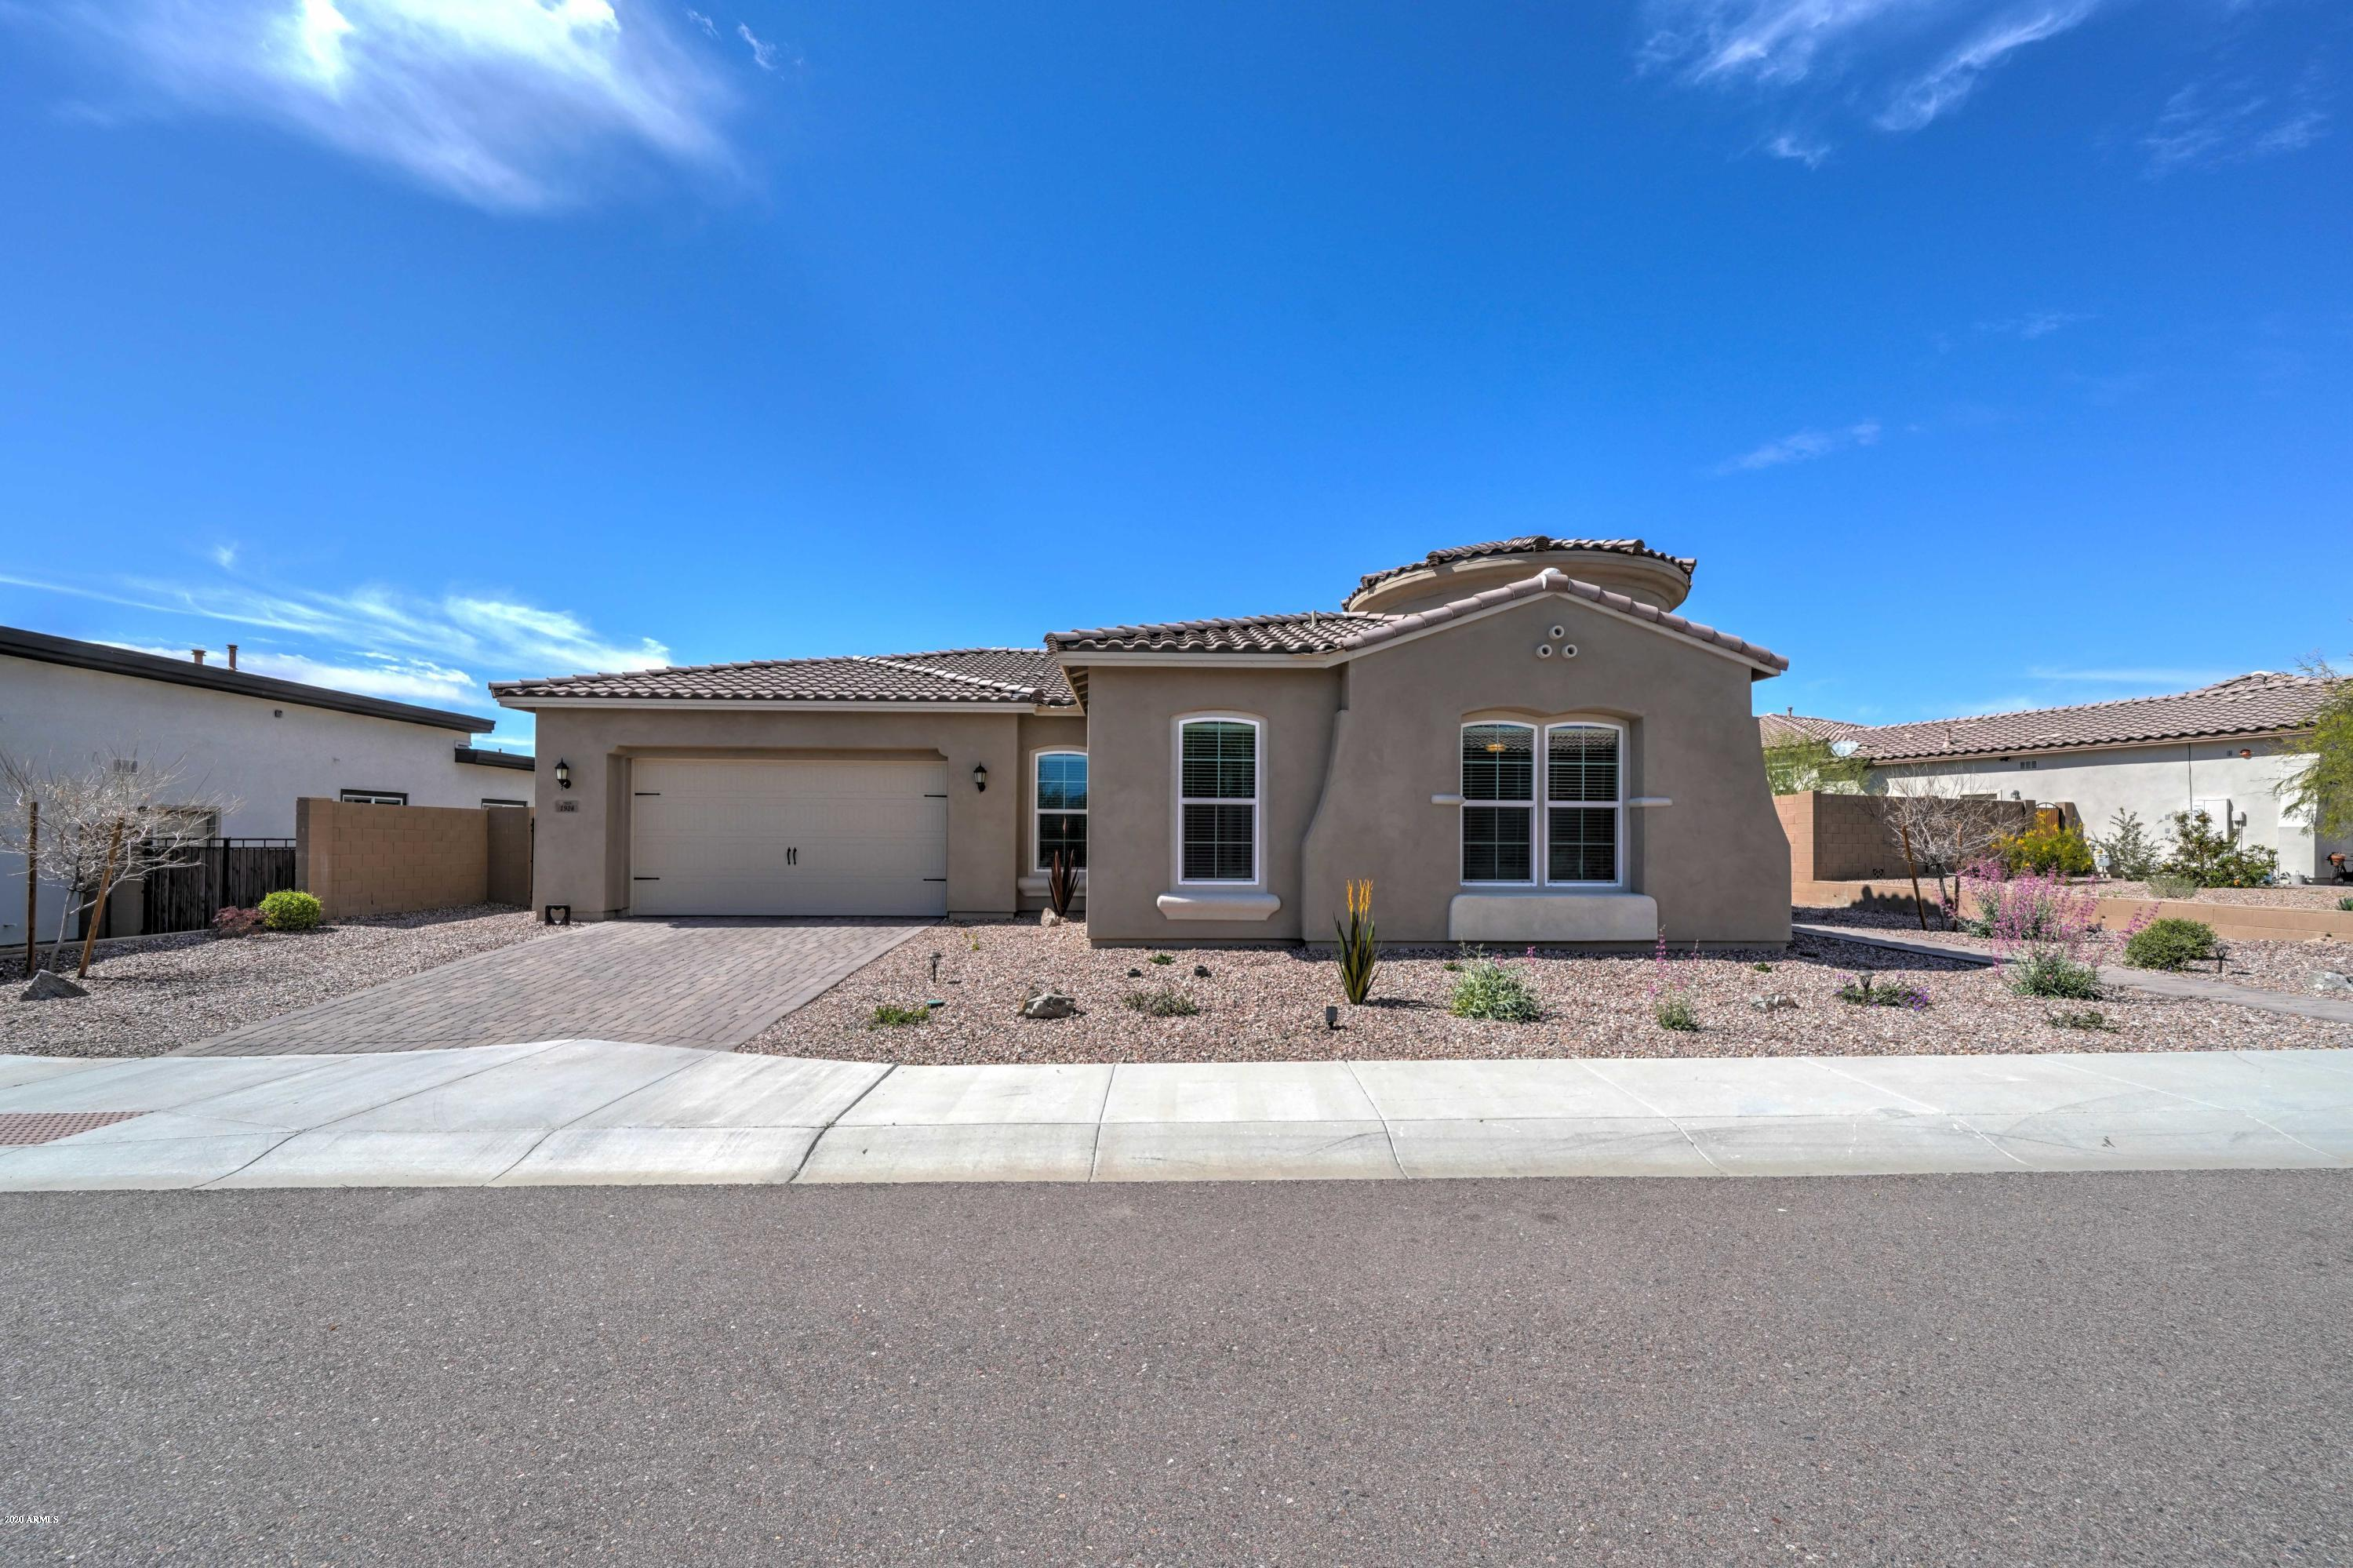 Photo of 1928 N 98TH Place, Mesa, AZ 85207